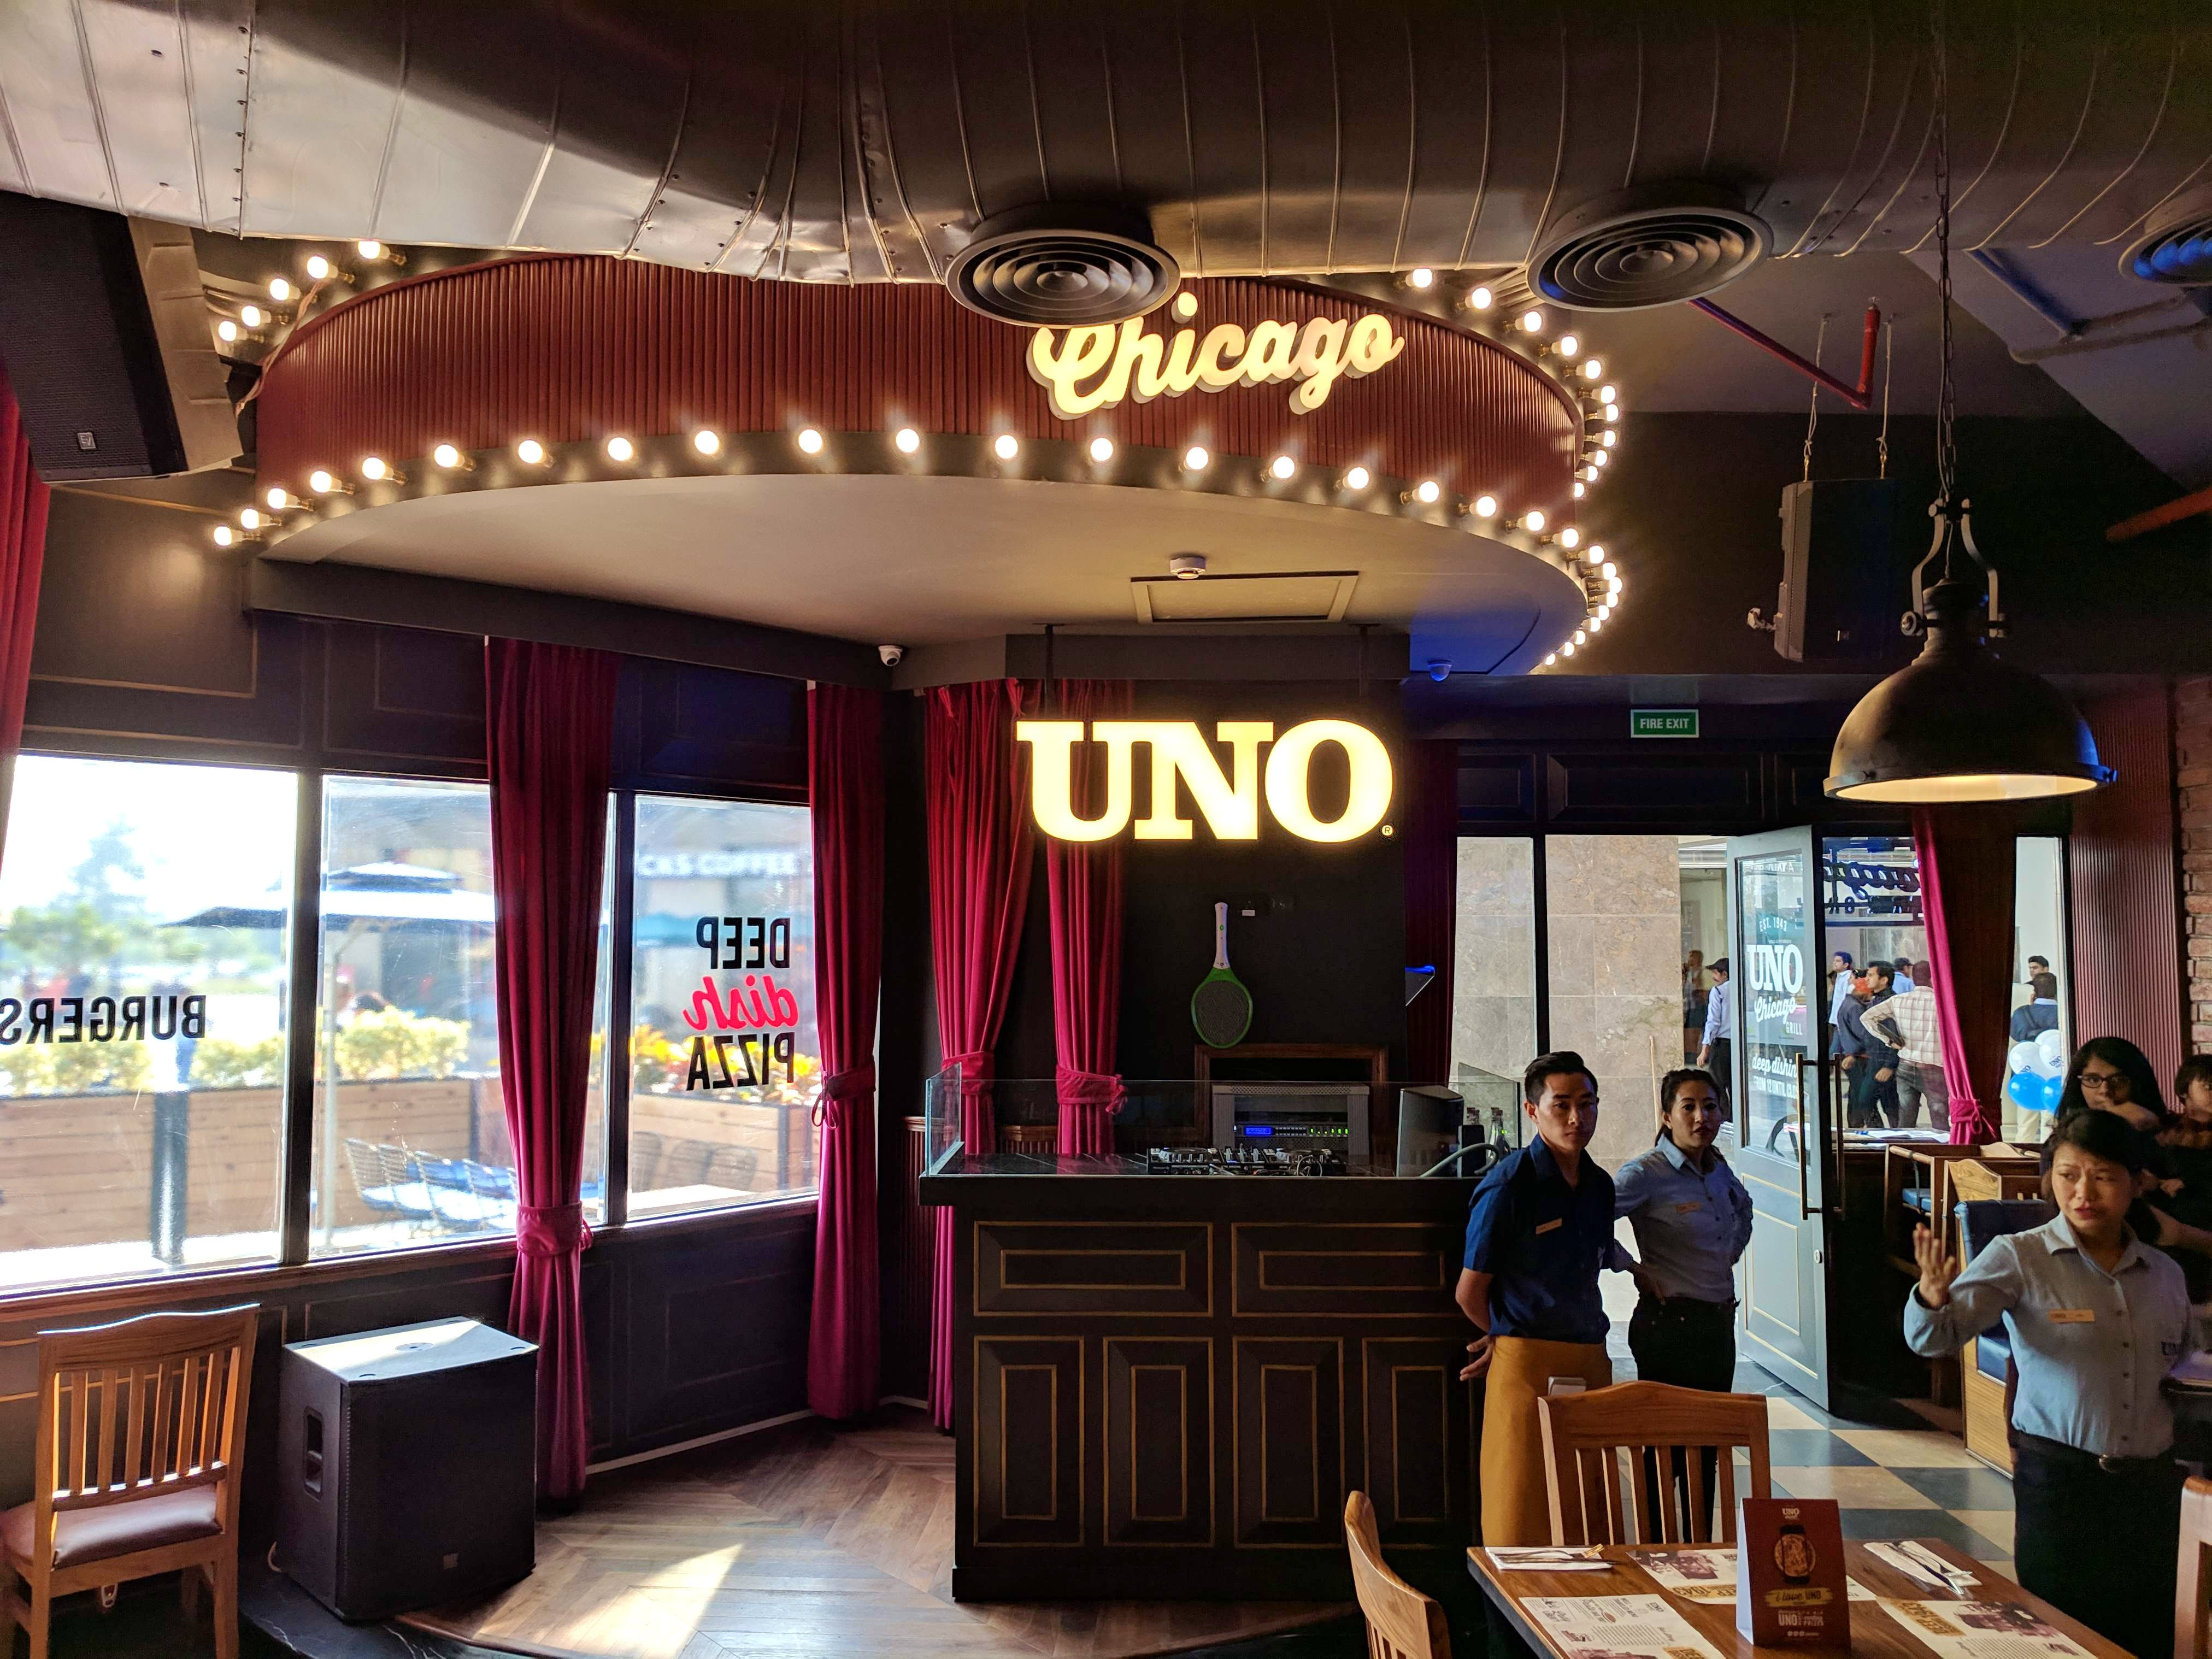 image - Uno Chicago Bar & Grill